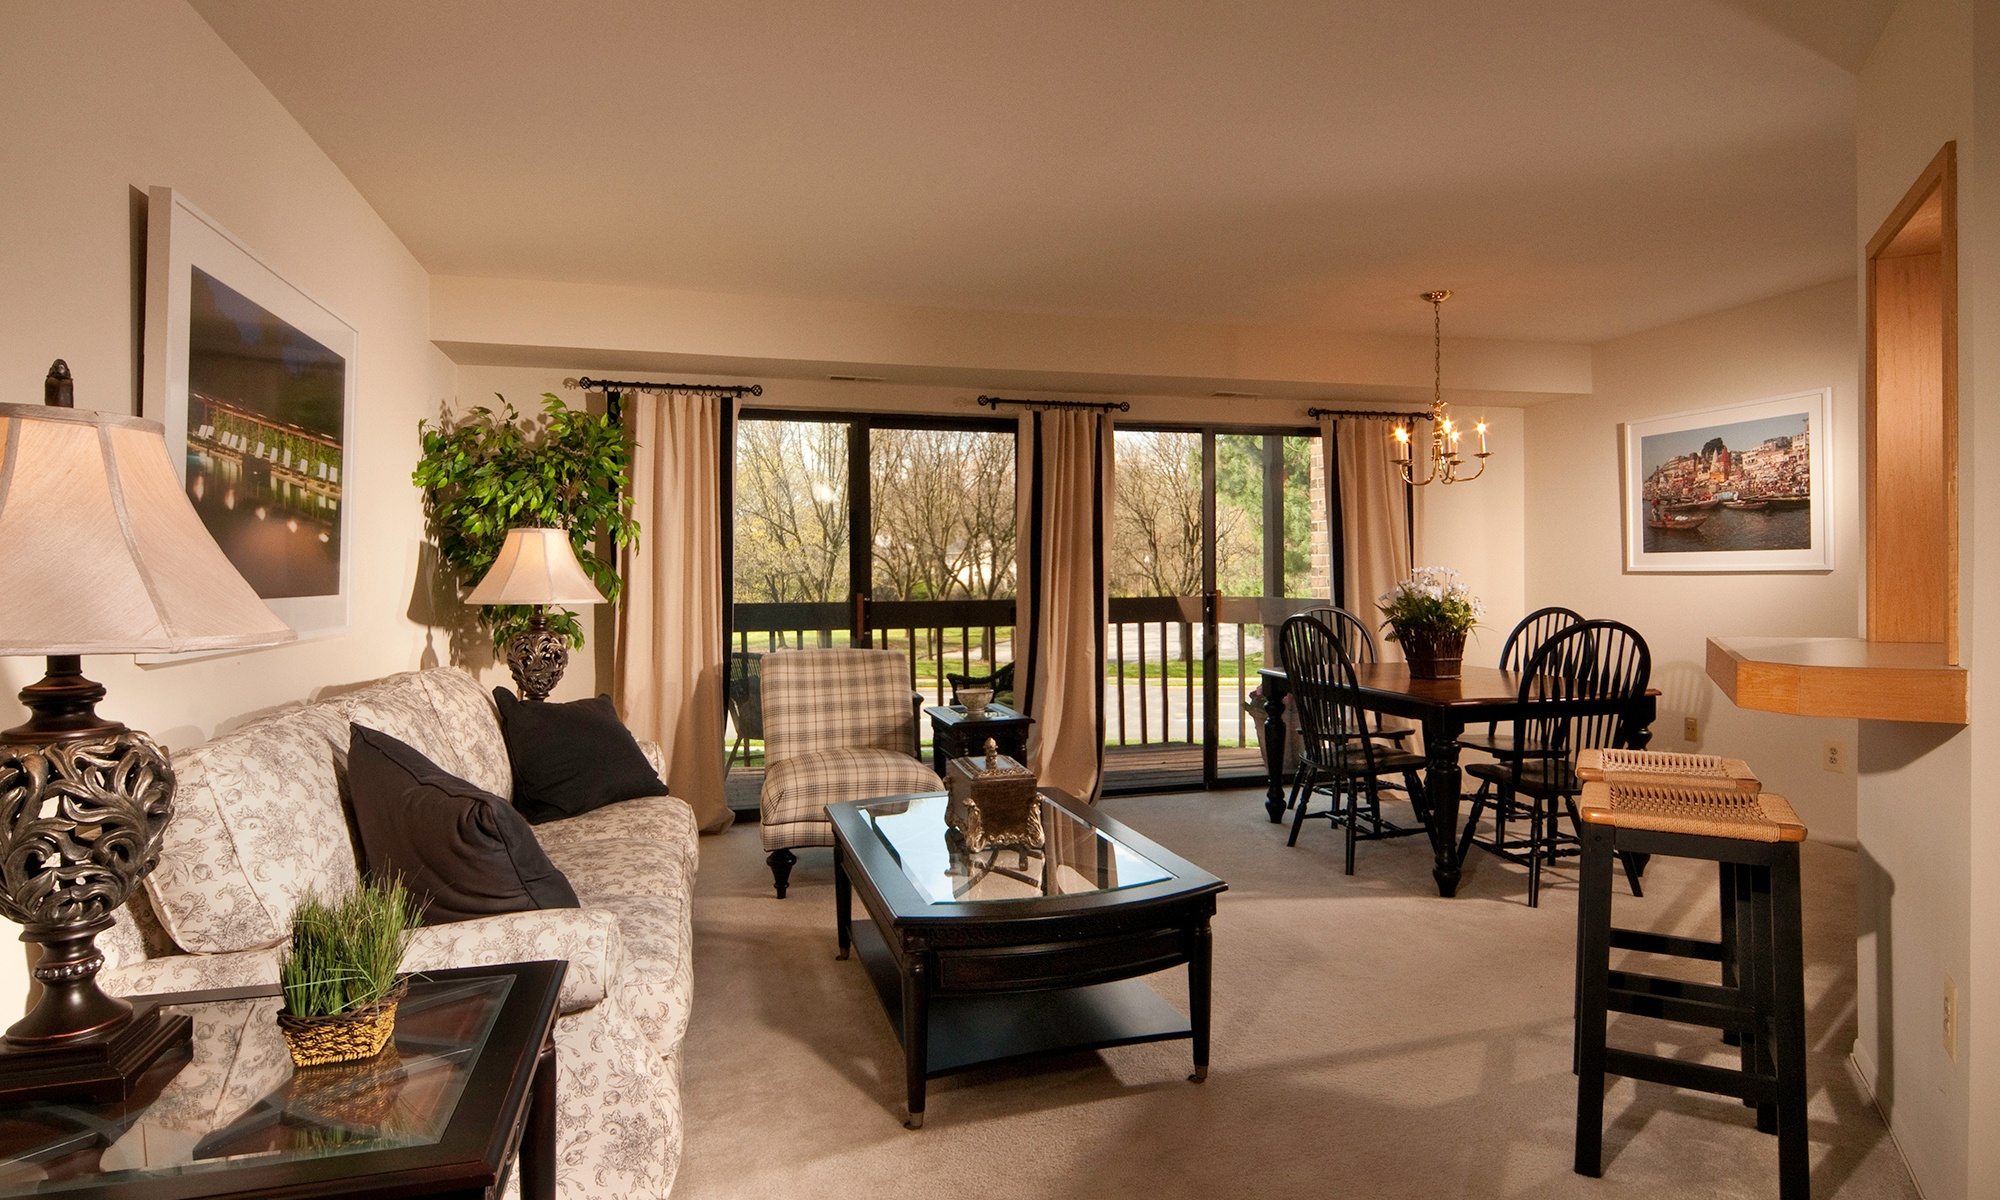 One Bedroom Apartments In Maryland 28 Images Big City Apartments For 1 000 Real Estate 101